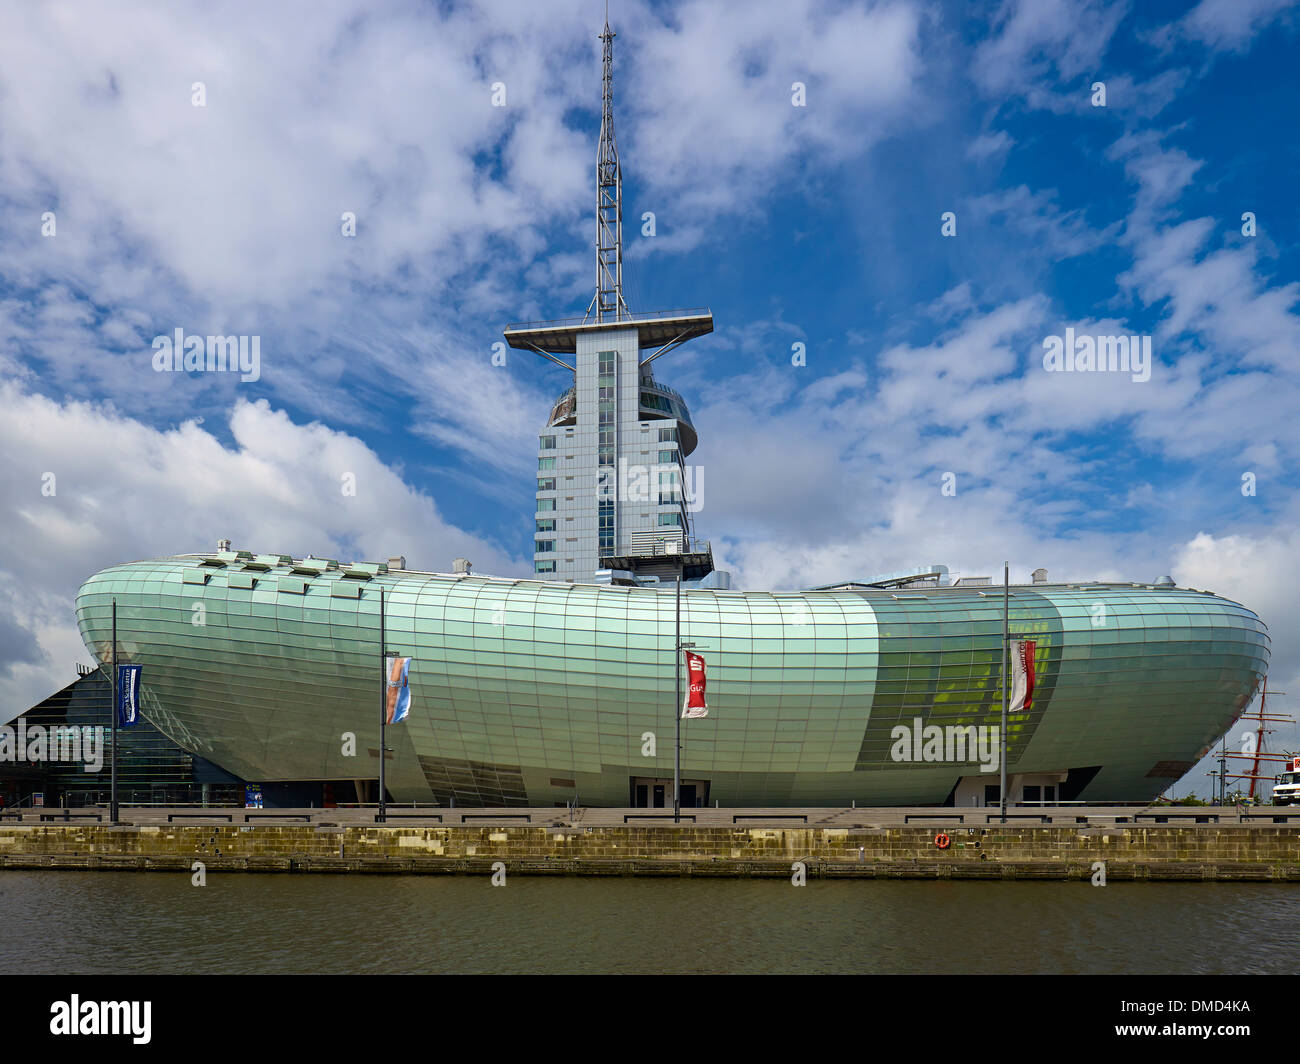 Atlantic Sail City Hotel and Klimahaus in Bremerhaven, Bremen, Germany - Stock Image